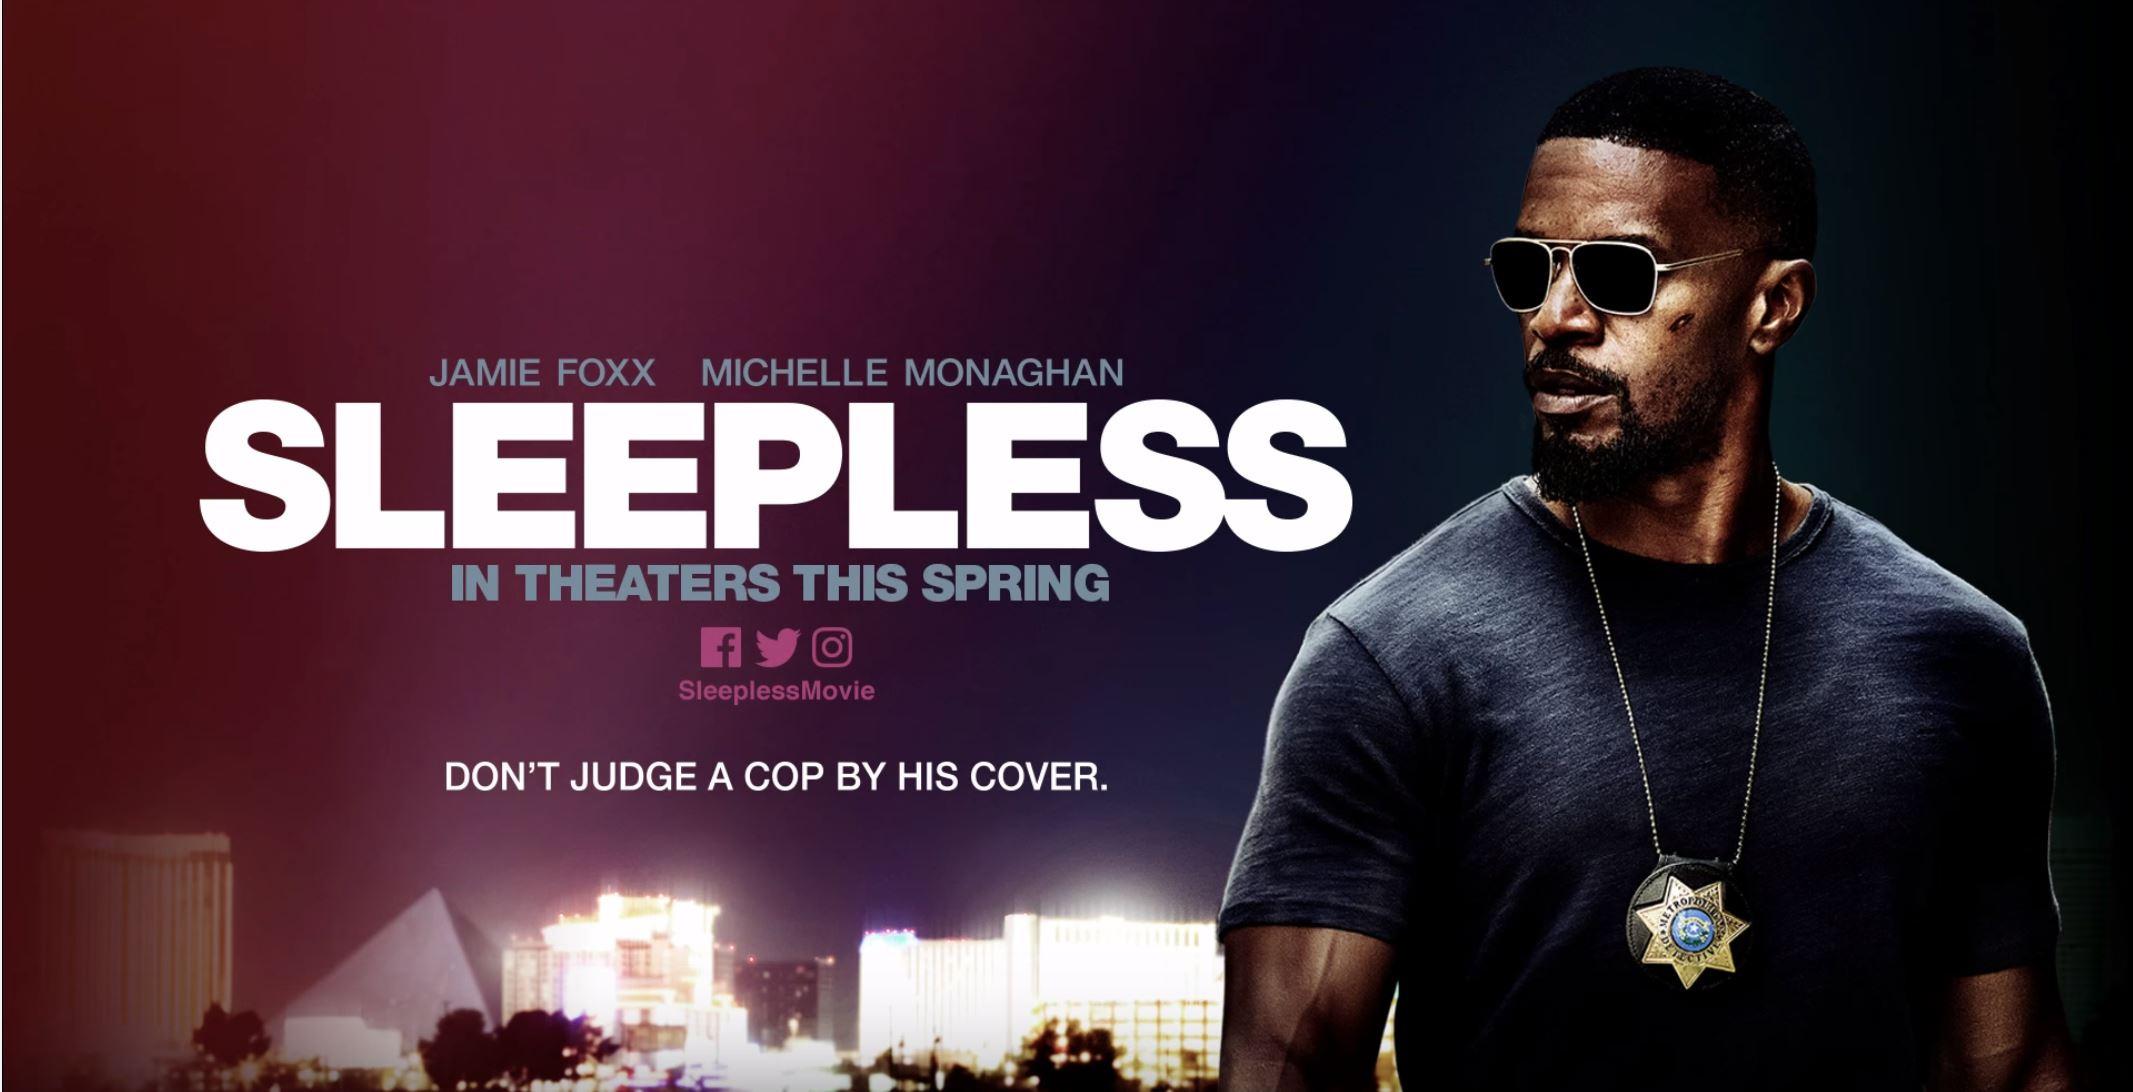 Watch Jamie Foxx in new Sleepless Trailer